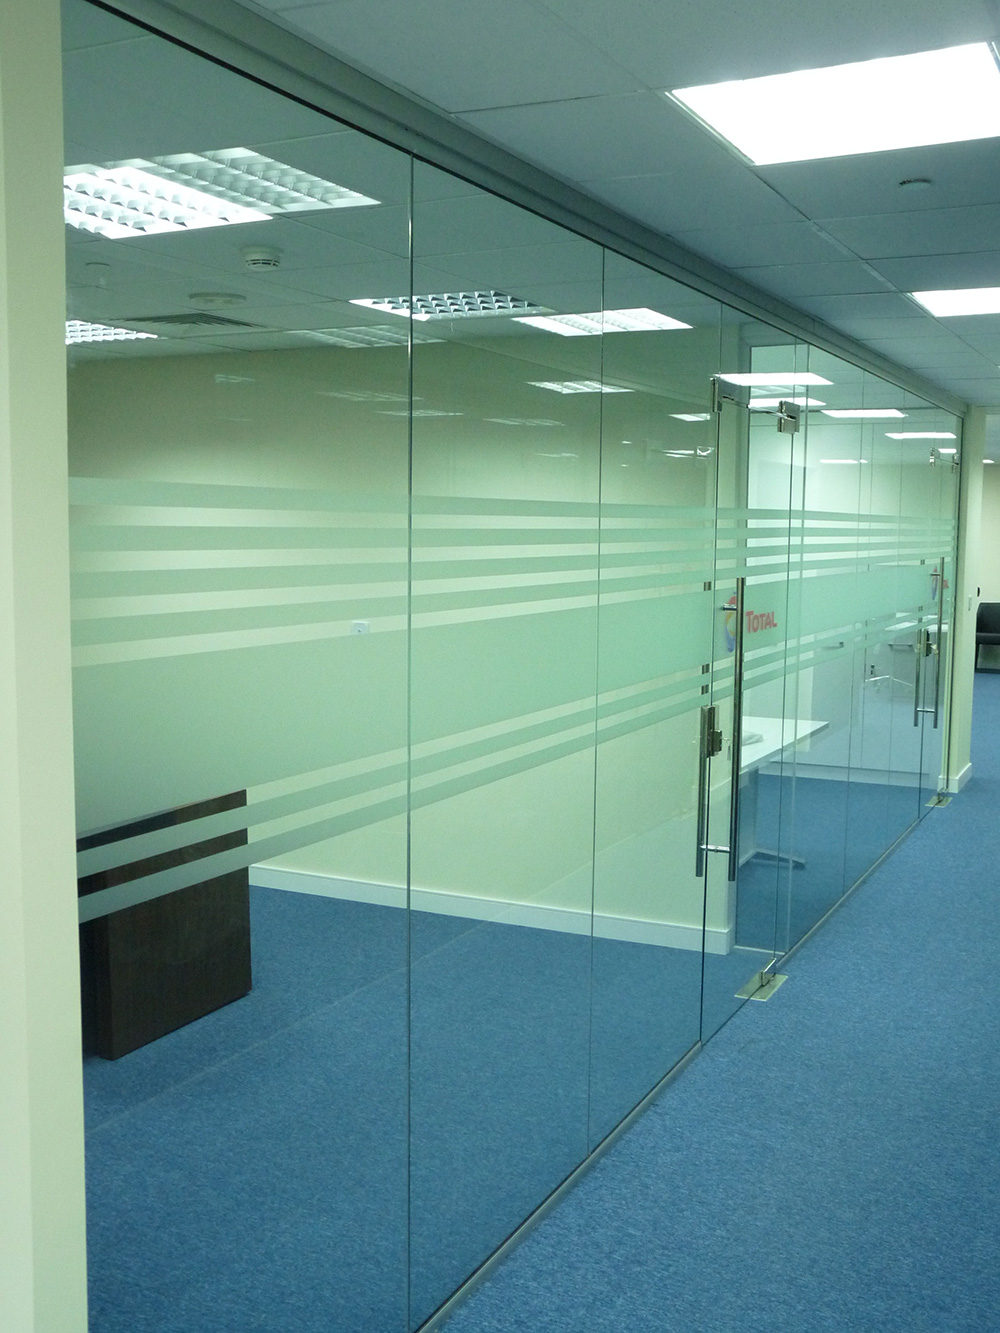 gdg_technical_services_dubai_glass_partitioning_1